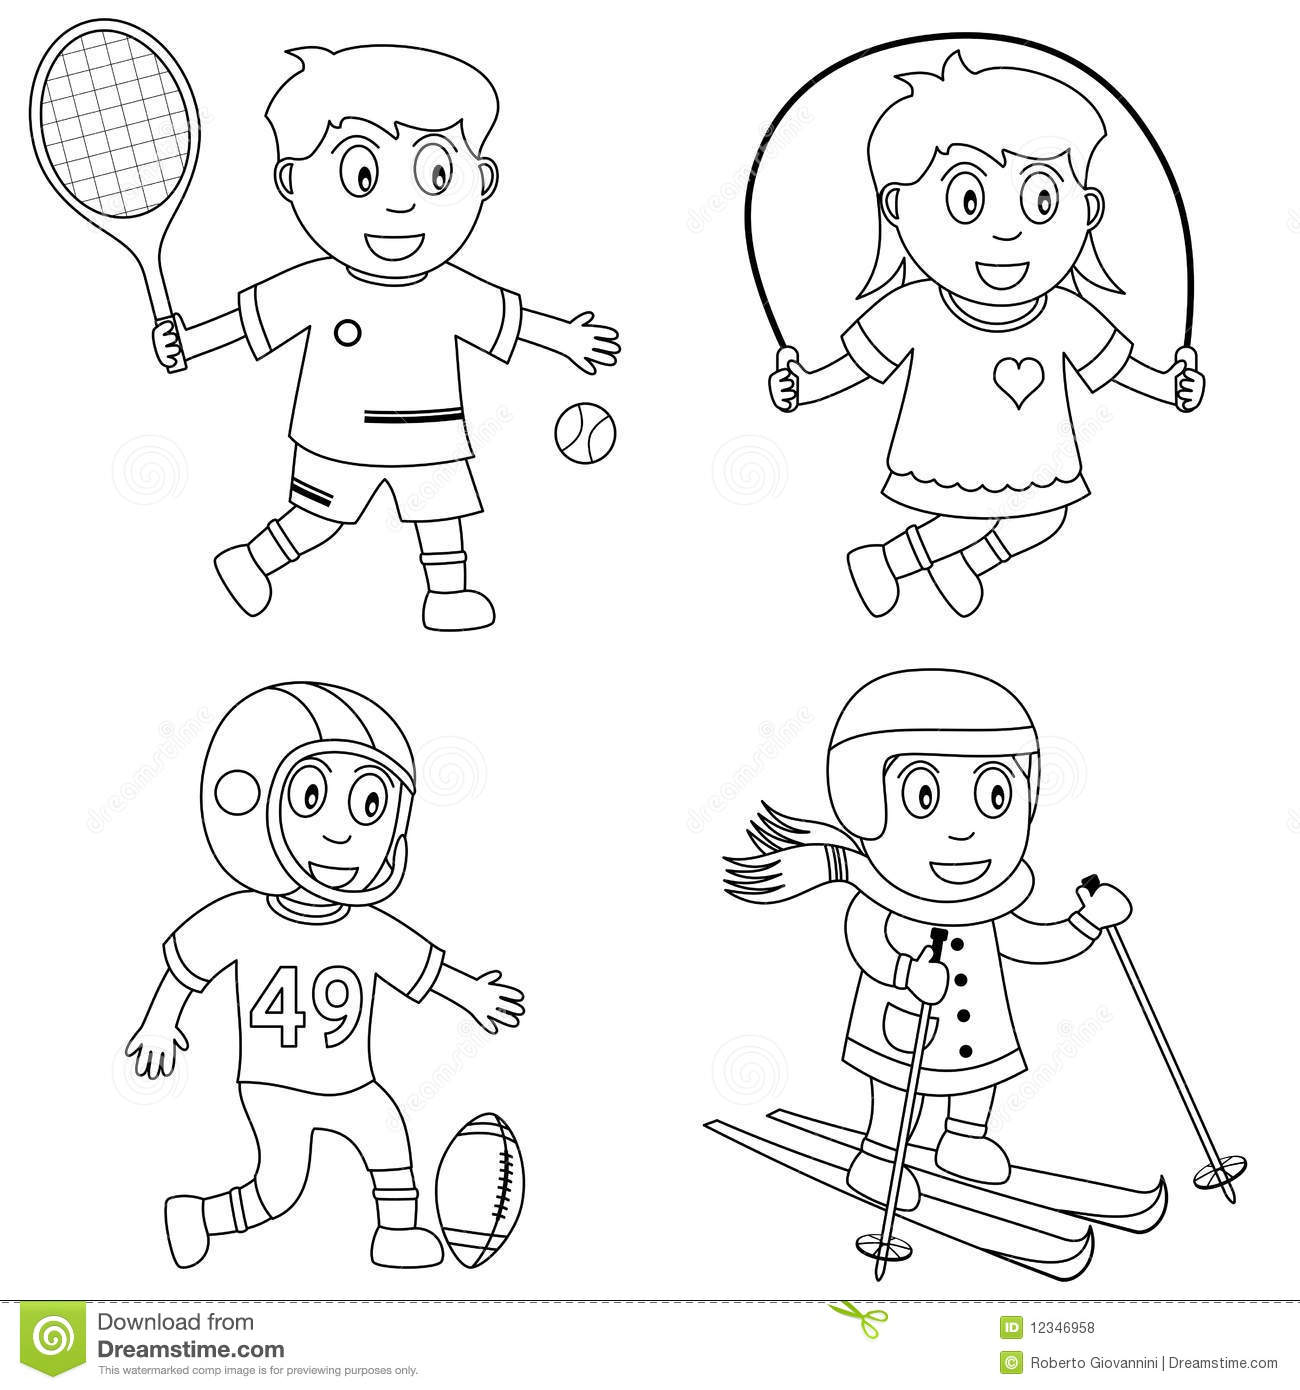 Coloring Sport For Kids 3 Royalty Free Stock Photos